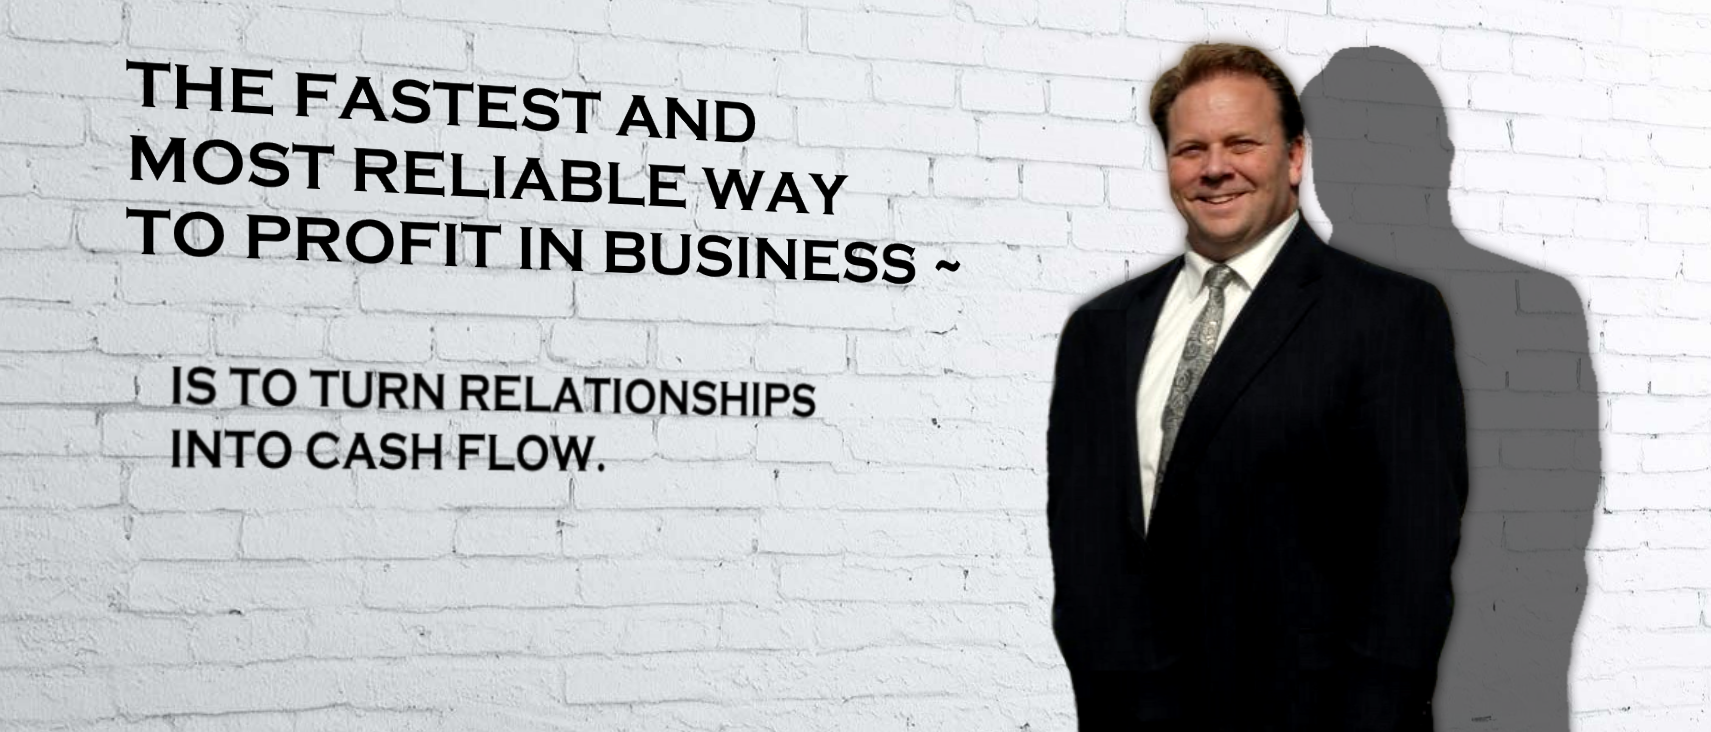 Brett LOGO Large White Brick Wall Relationships into cashflow crop.png